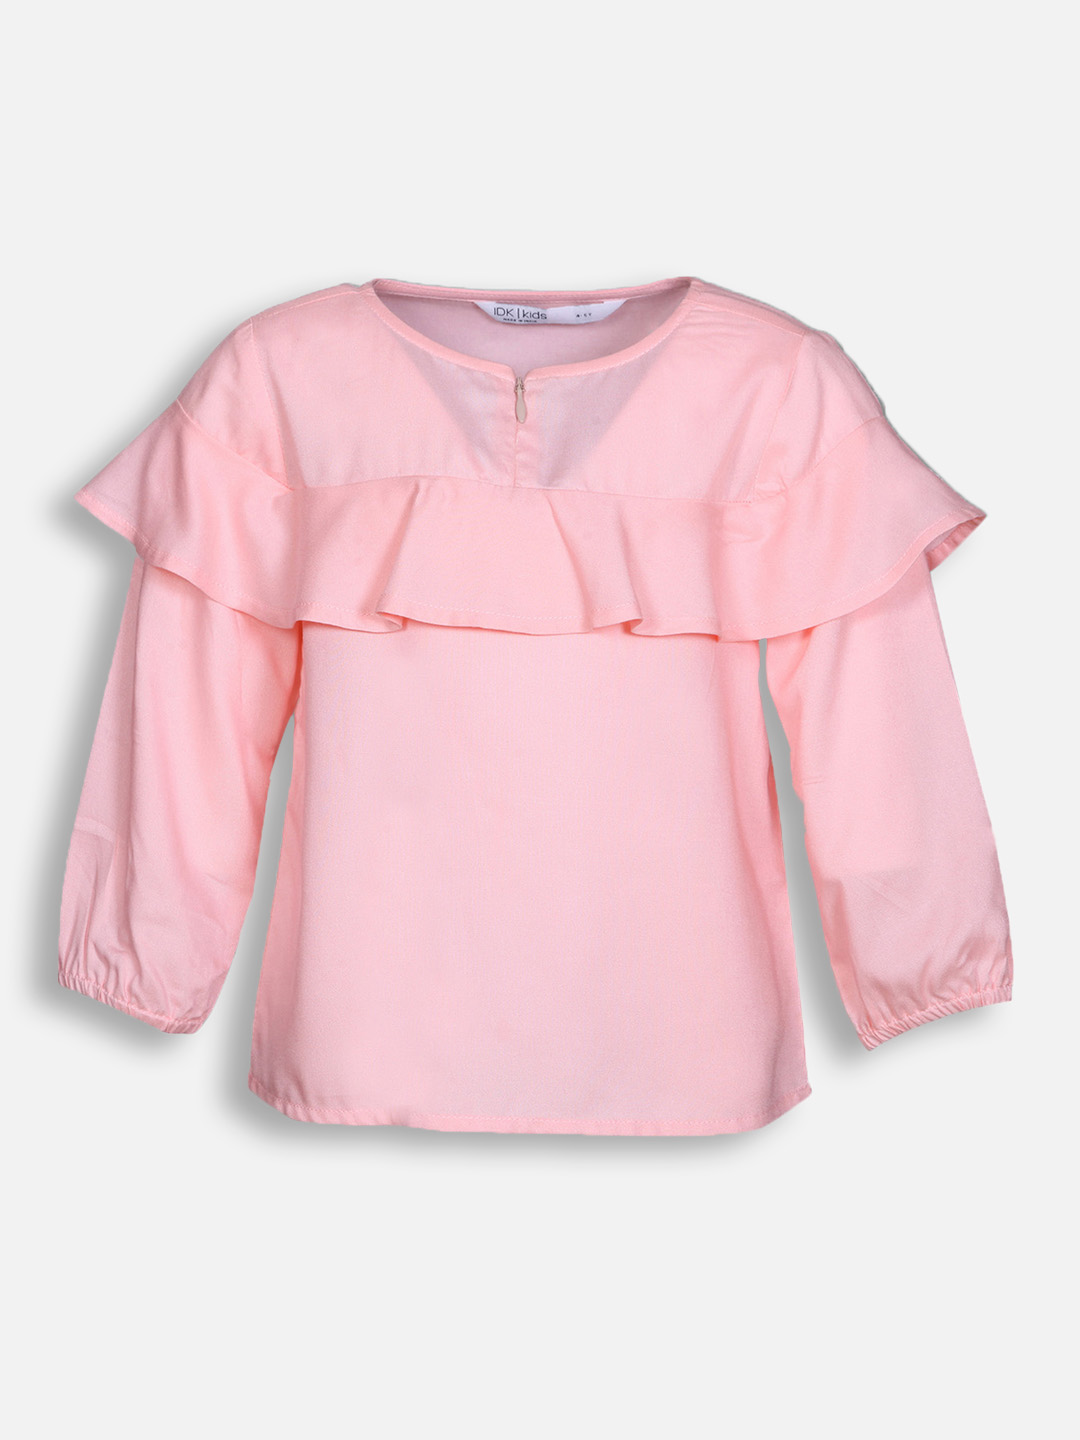 Girls Solid Pink Top